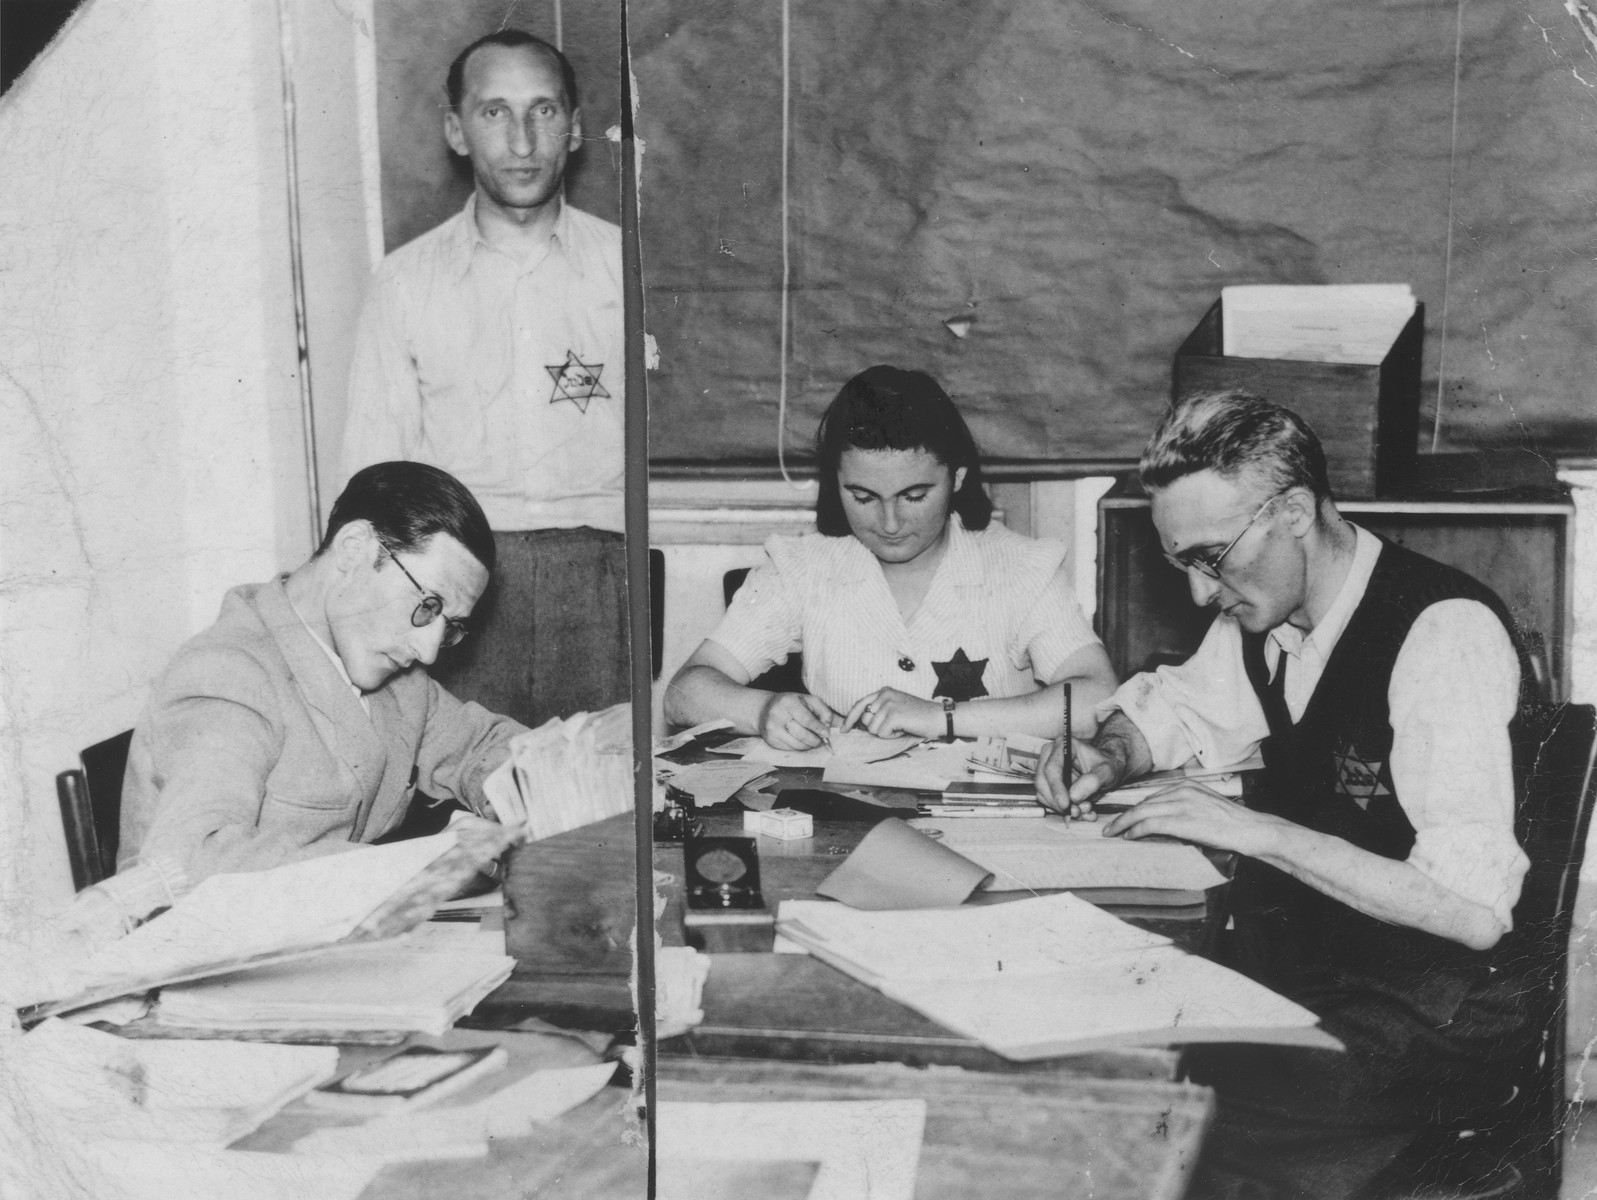 Four employees work in the office of the Leopold Michatz garment factory in the Bedzin ghetto.  Pictured from left to right are Natek Aleksandrowicz, Kahane, Hanka Granek and Hercko Brukner.